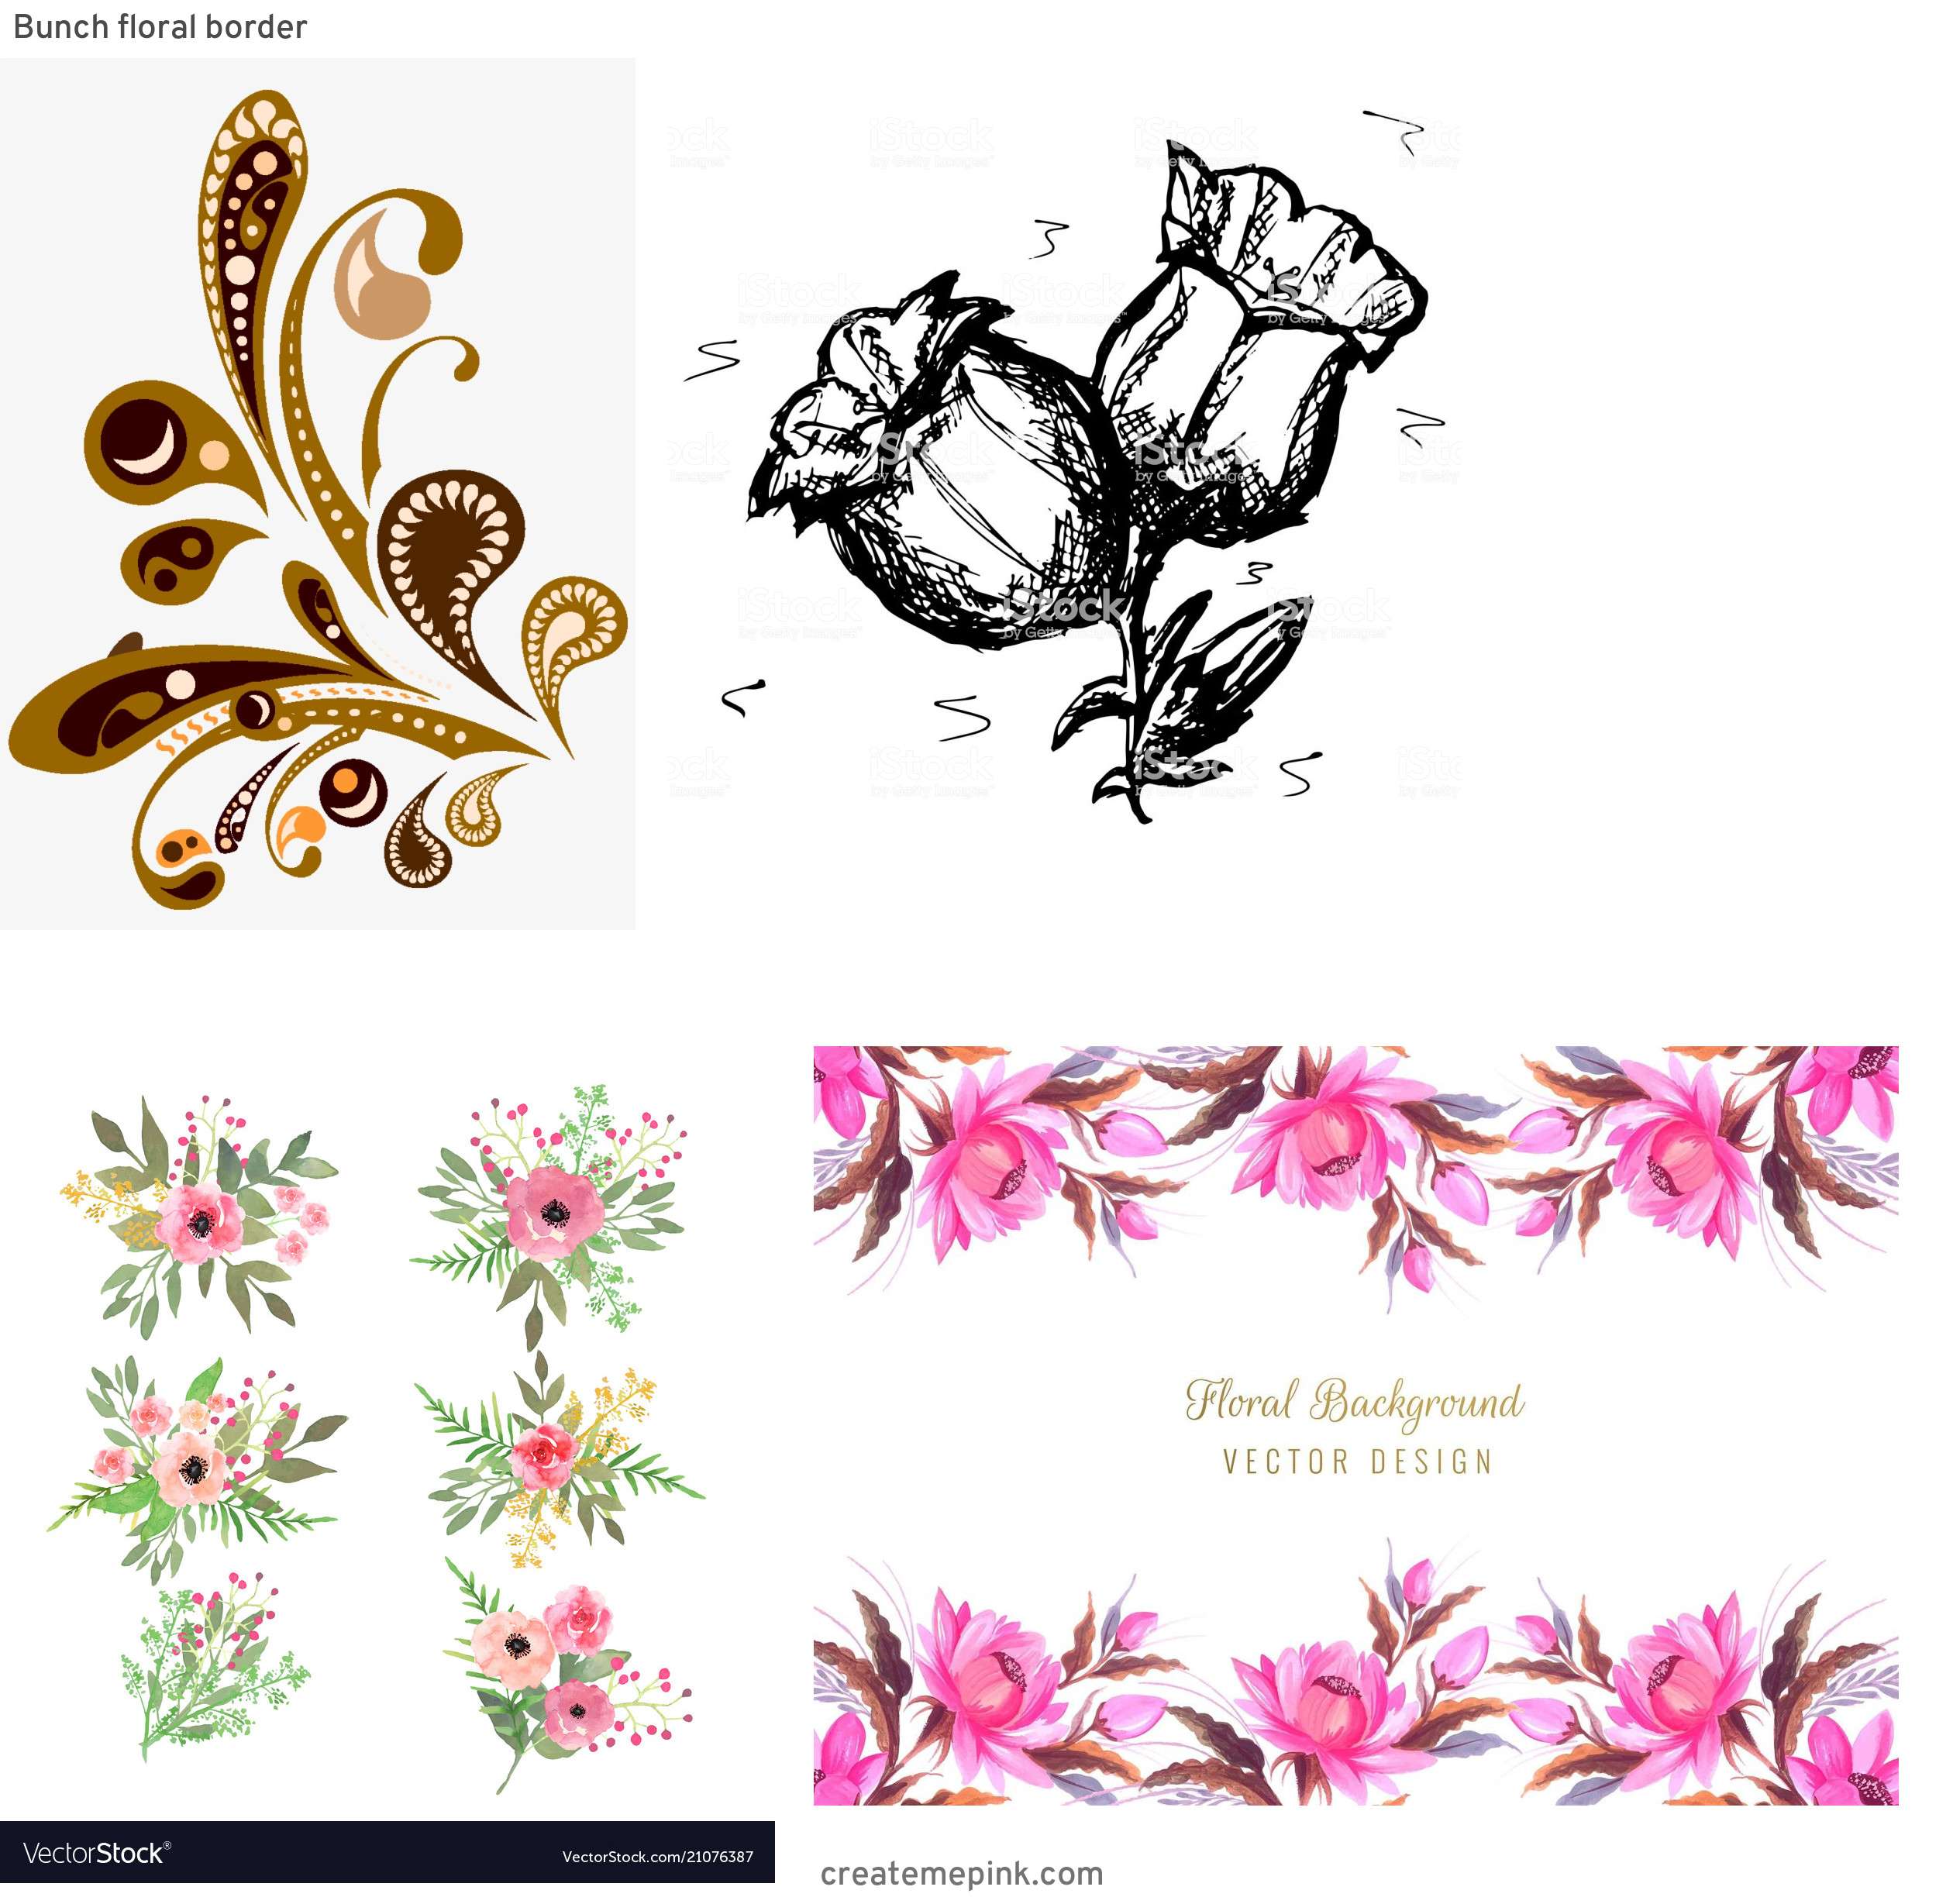 Vector Graphics Floral: Bunch Floral Border